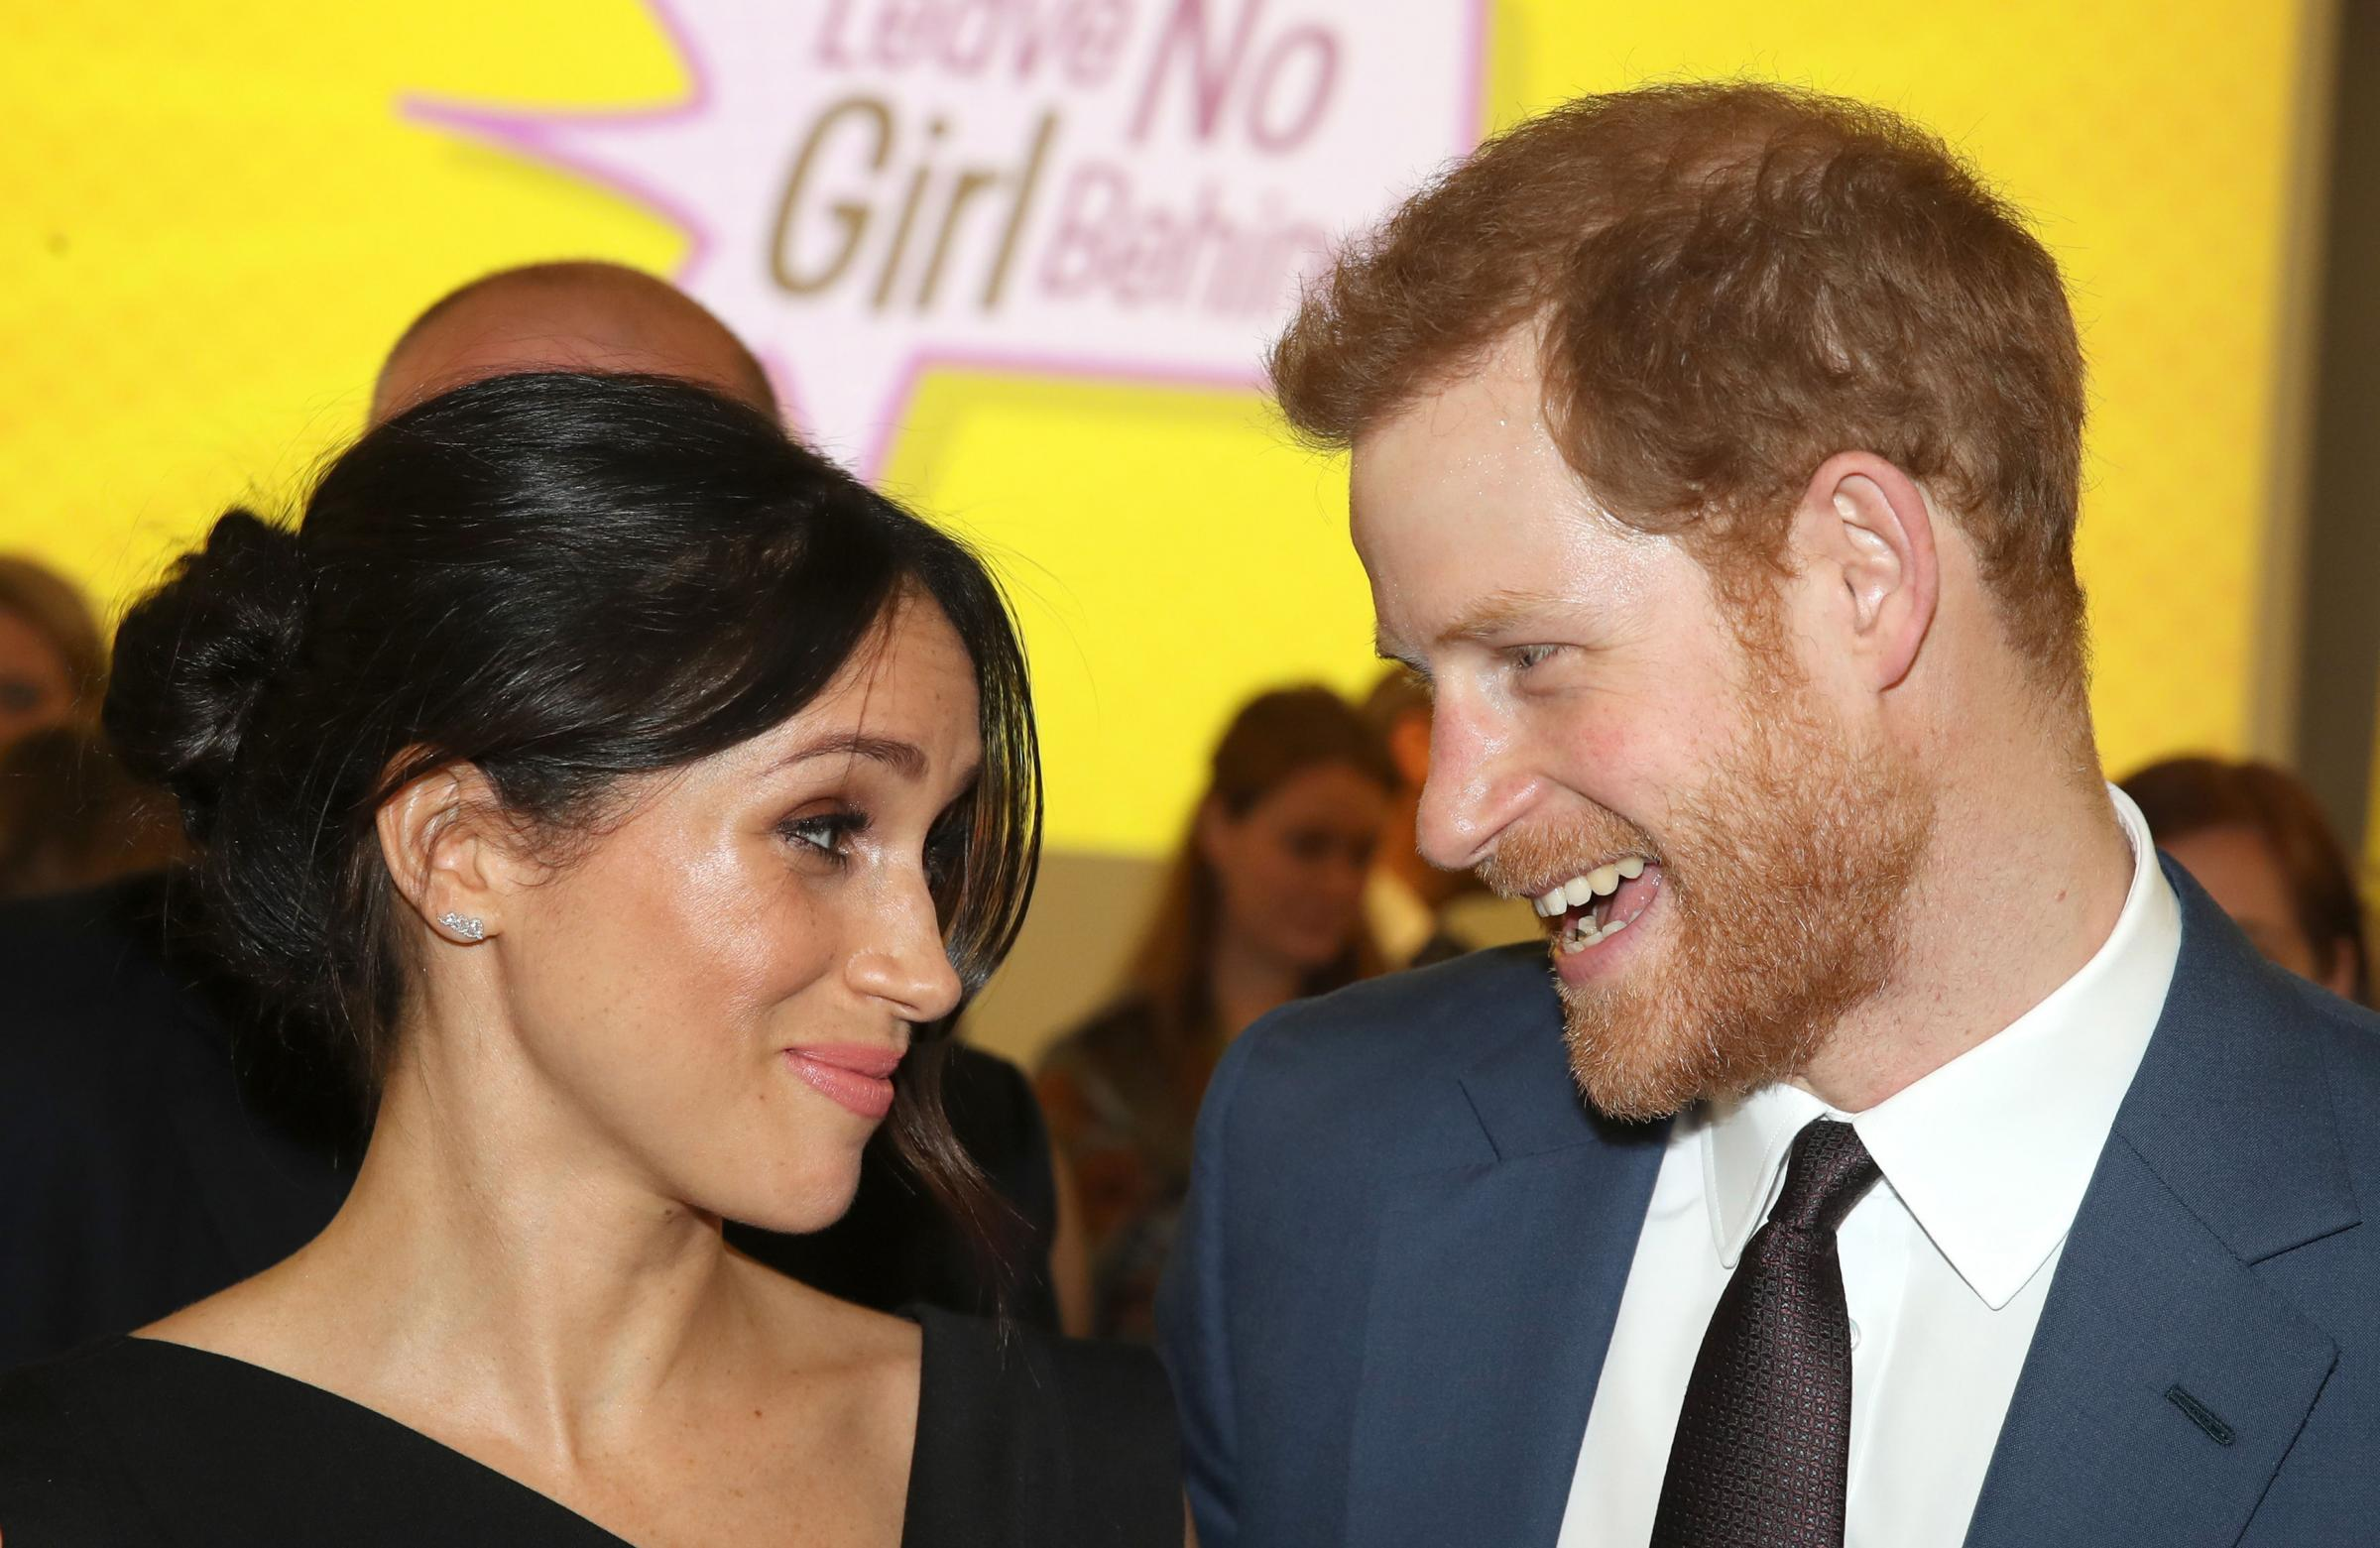 Prince Harry and Meghan Markle's wedding is one of two events screened at the fun day (Picture by Chris Jackson/PA Wire)